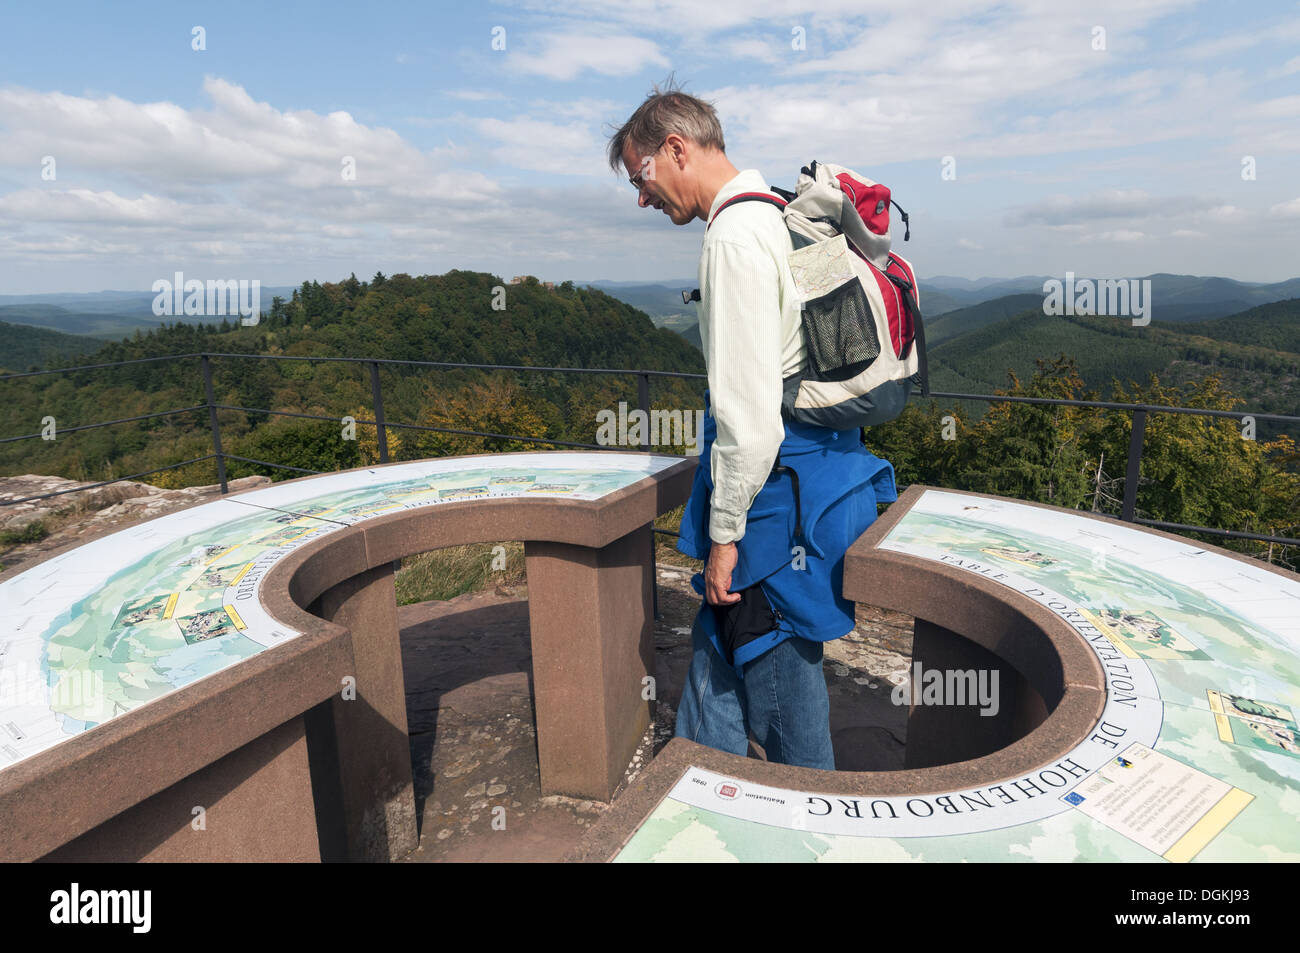 Elk213-1573 France, Alsace, Vosges Regional Park, Hohenburg Chateau lookout with visitor - Stock Image